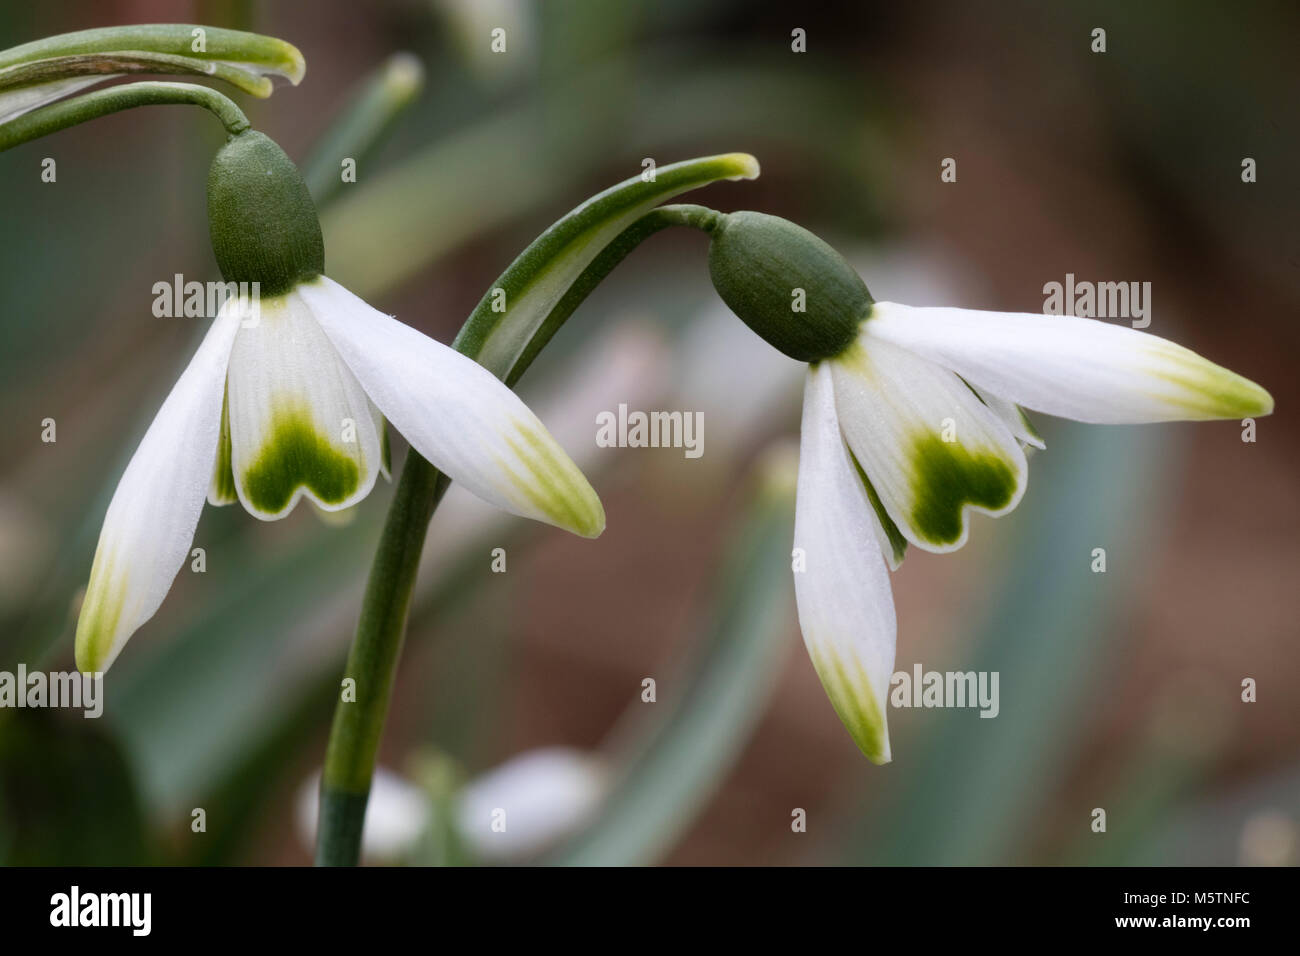 Well marked flowers of the Winter blooming snowdrop, Galanthus 'Green Arrow' - Stock Image